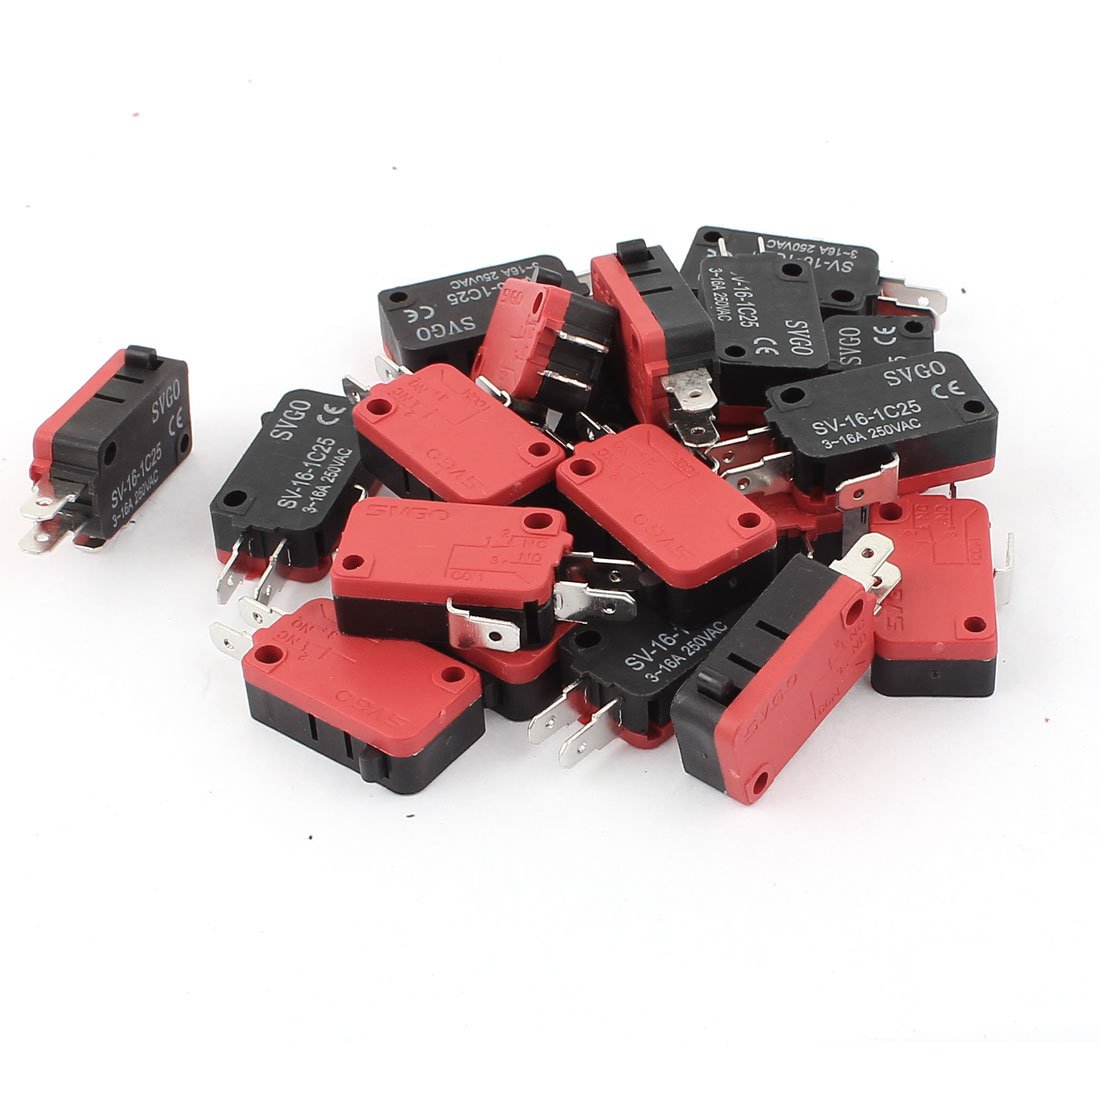 20Pcs AC 250V 3-16A Snap Action Push Button SPDT Momentary Micro Limit Switch